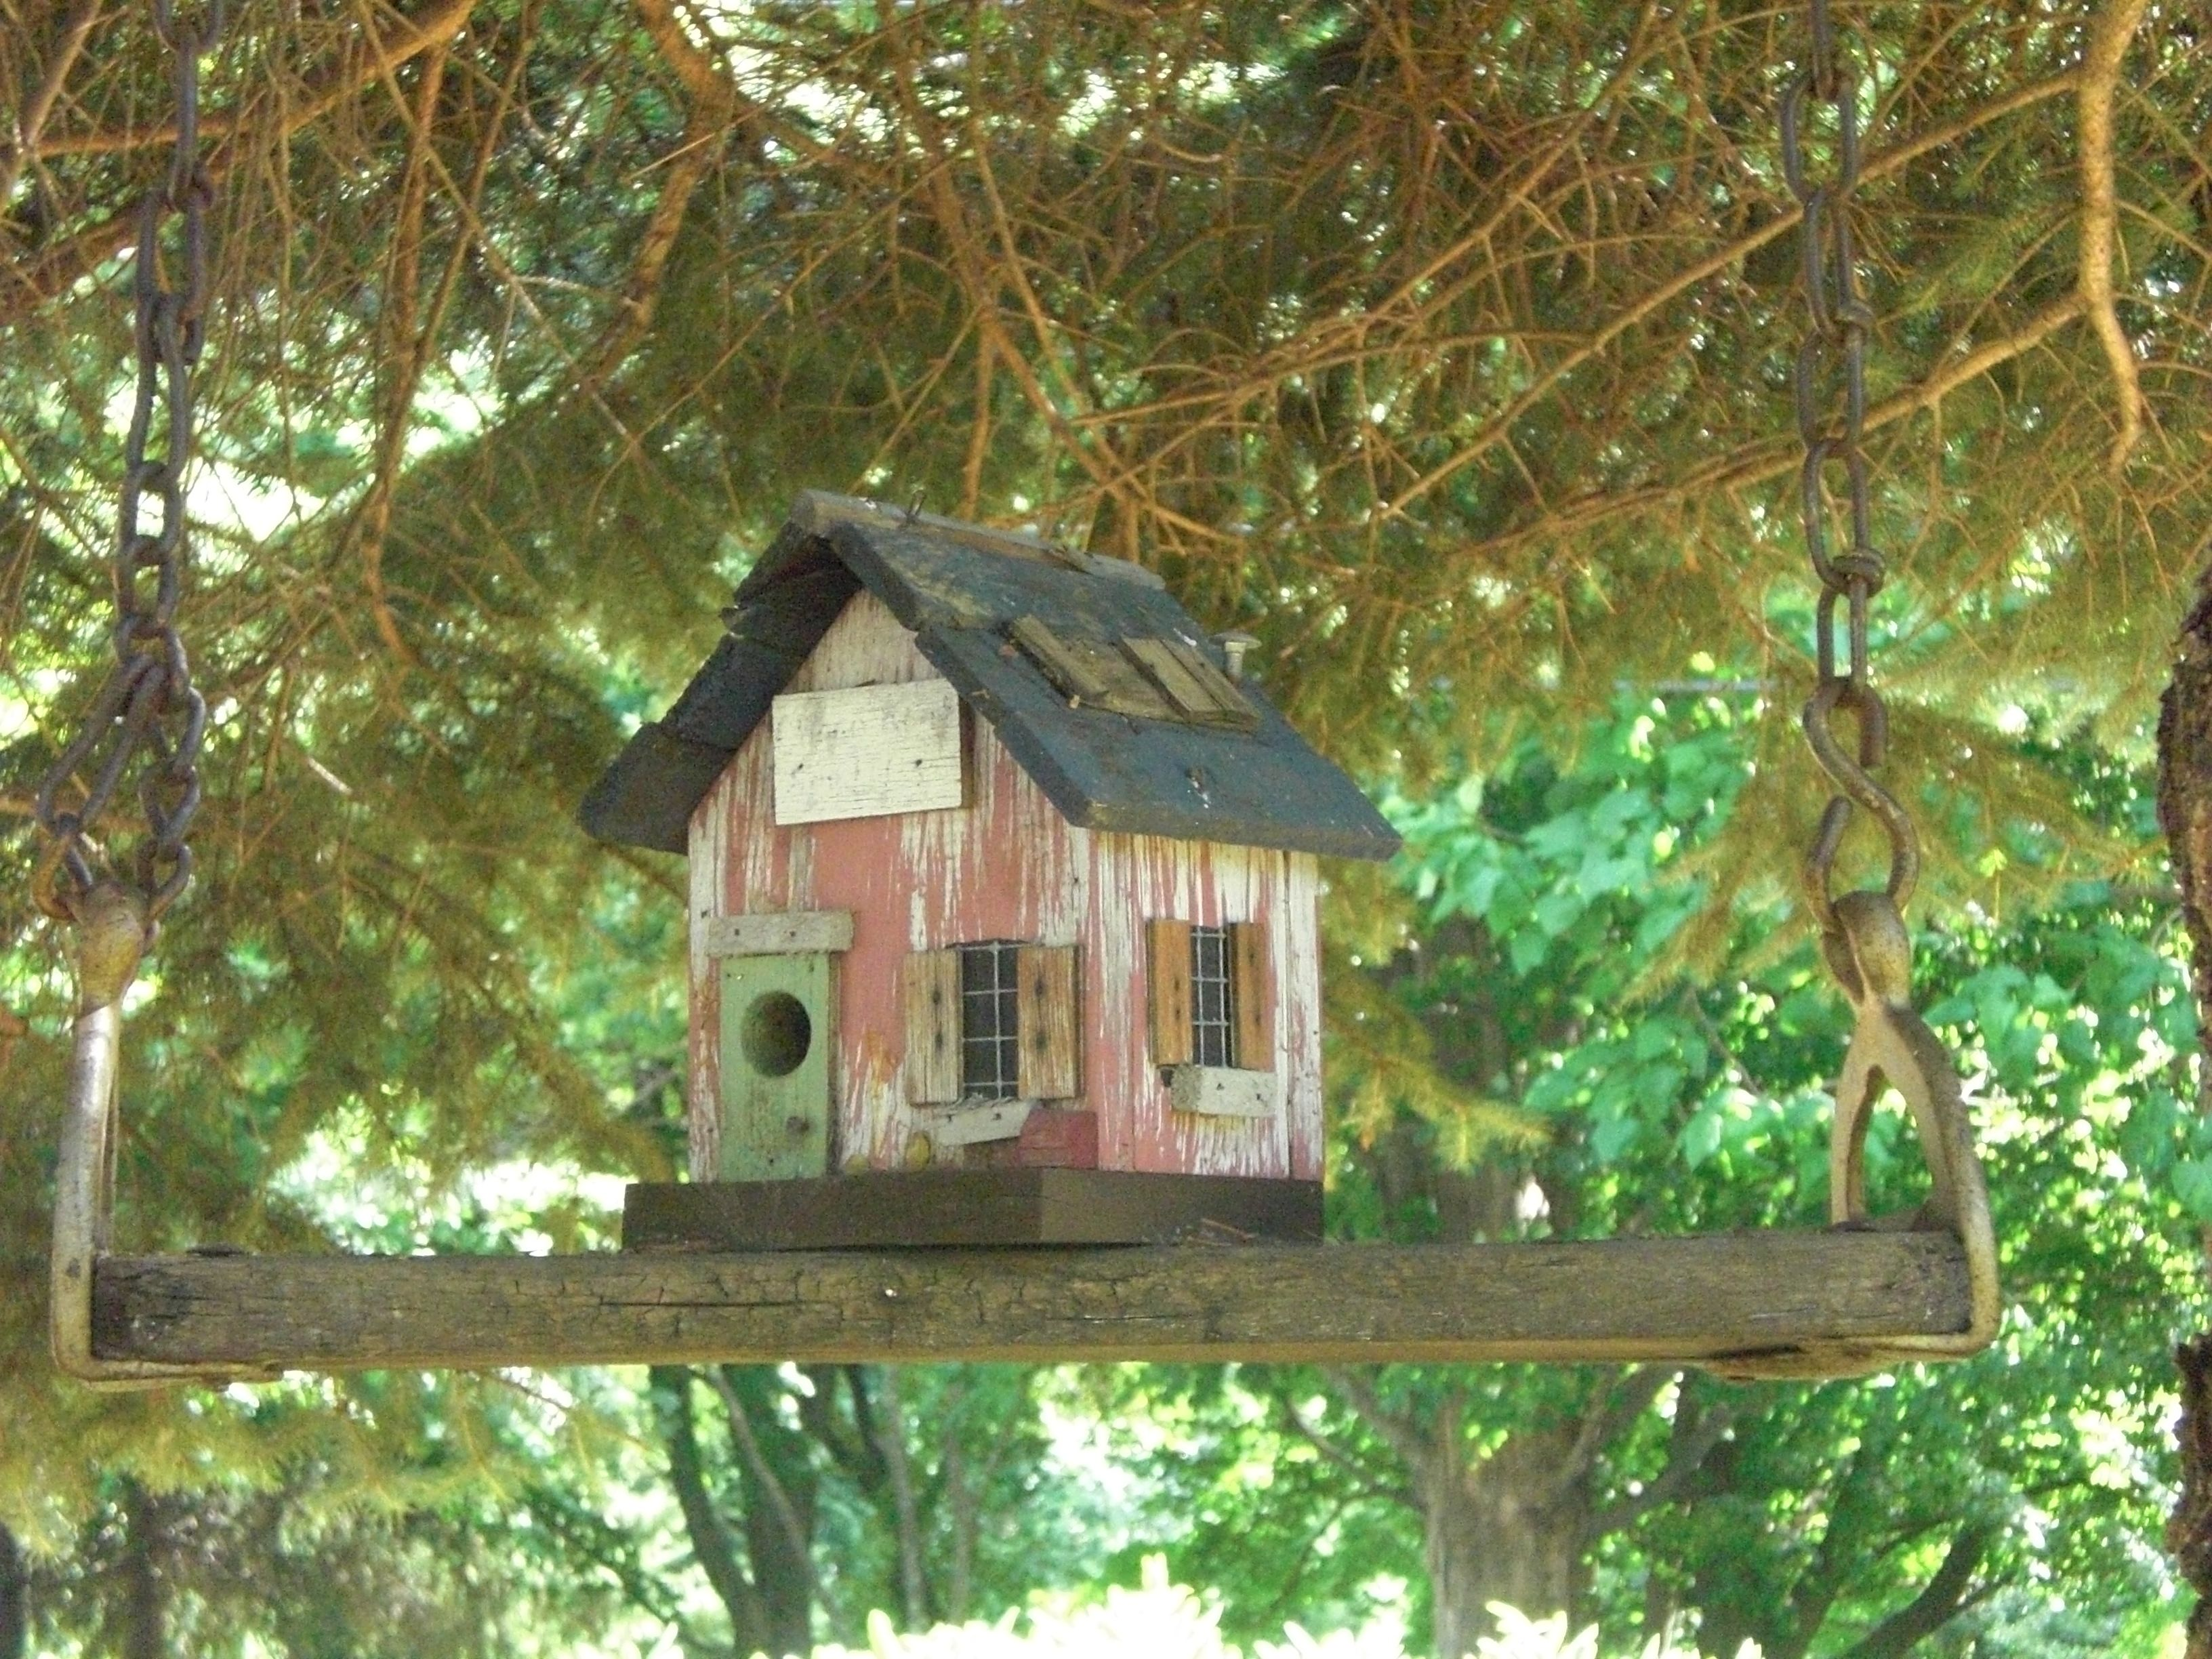 Old swing hung up high with bird house idea from hometownantiqueswb also rh pinterest